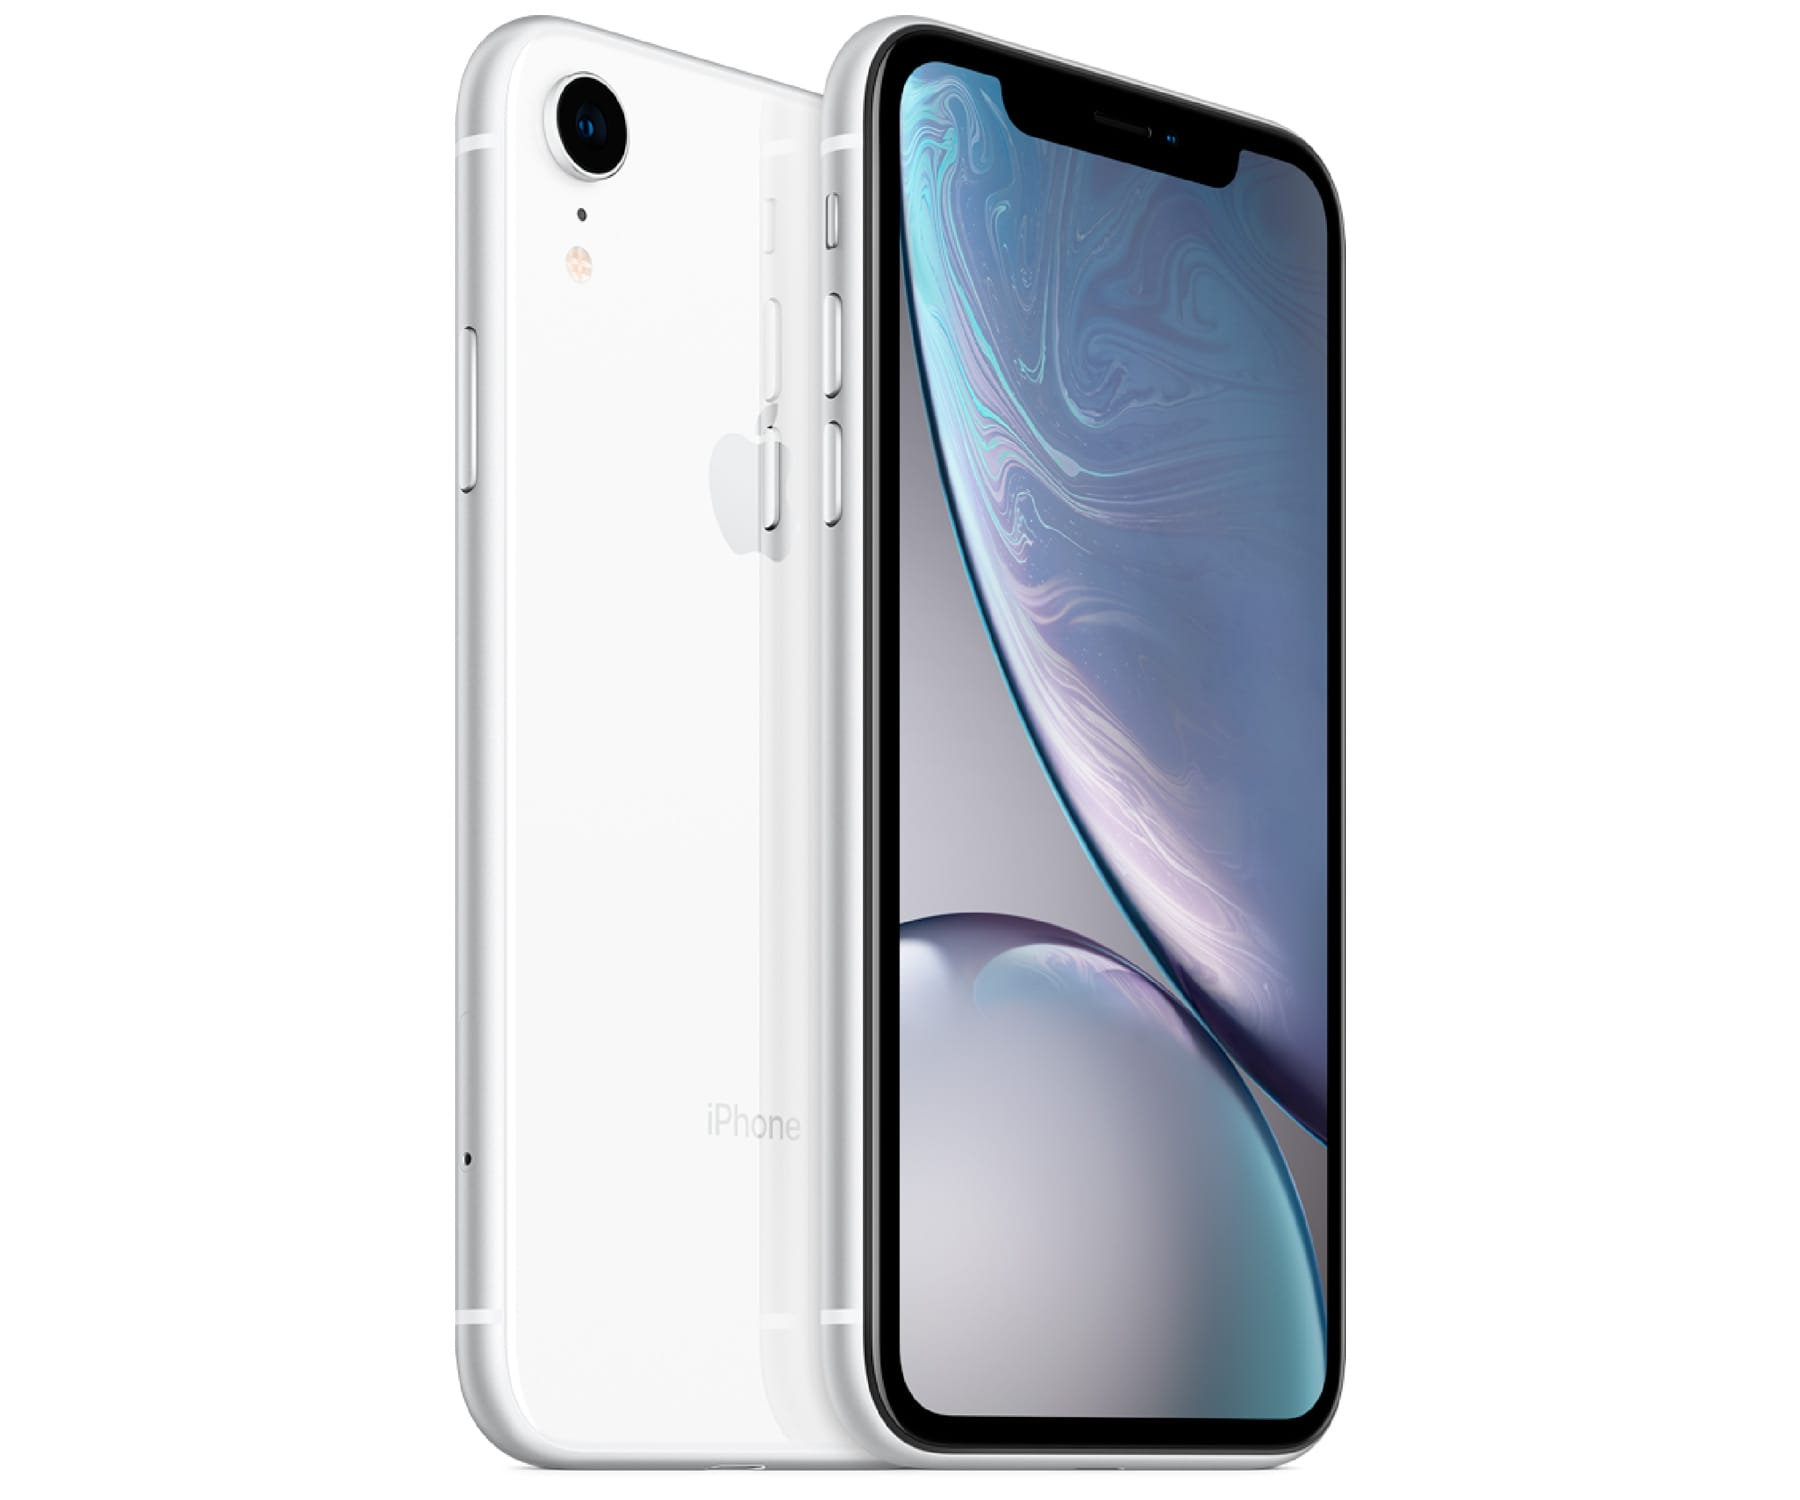 APPLE IPHONE XR 64GB BLANCO REACONDICIONADO CPO MÓVIL 4G 6.1'' LIQUID RETINA HD LED HDR/6CORE/64GB/3GB RAM/12MP/7MP